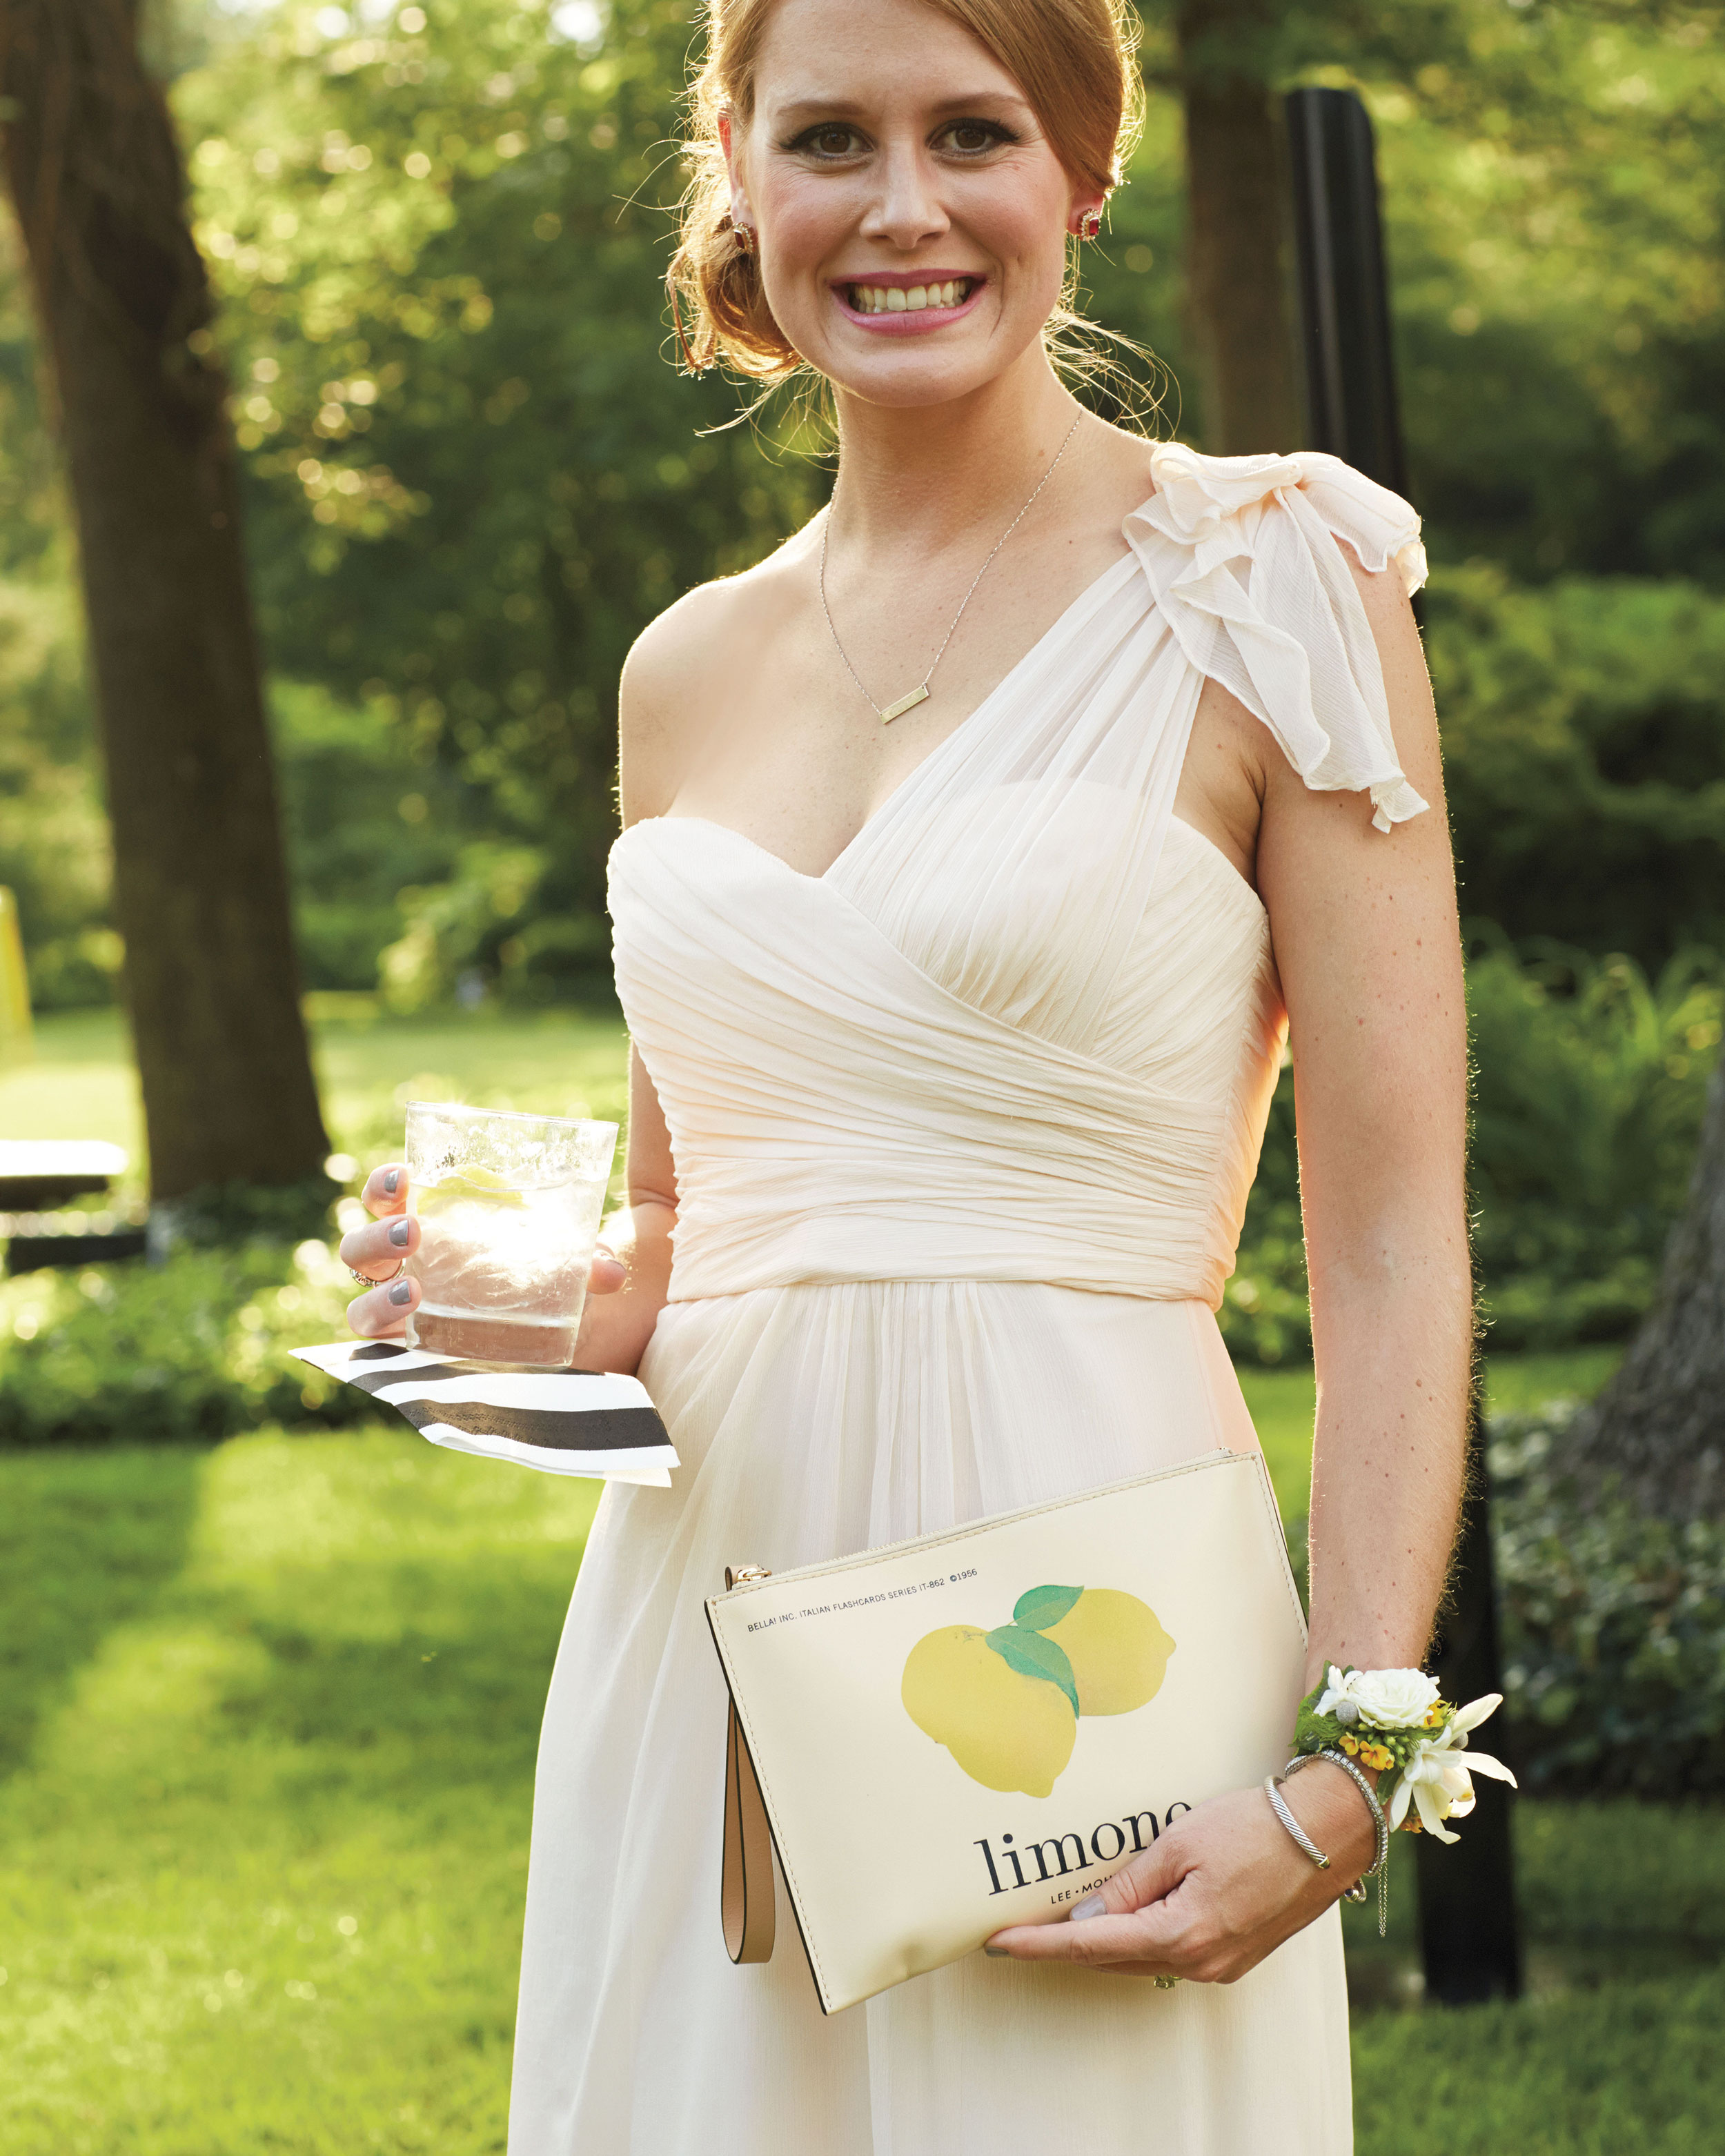 merin-ryan-real-wedding-bridesmaids-dress-and-clutch.jpg